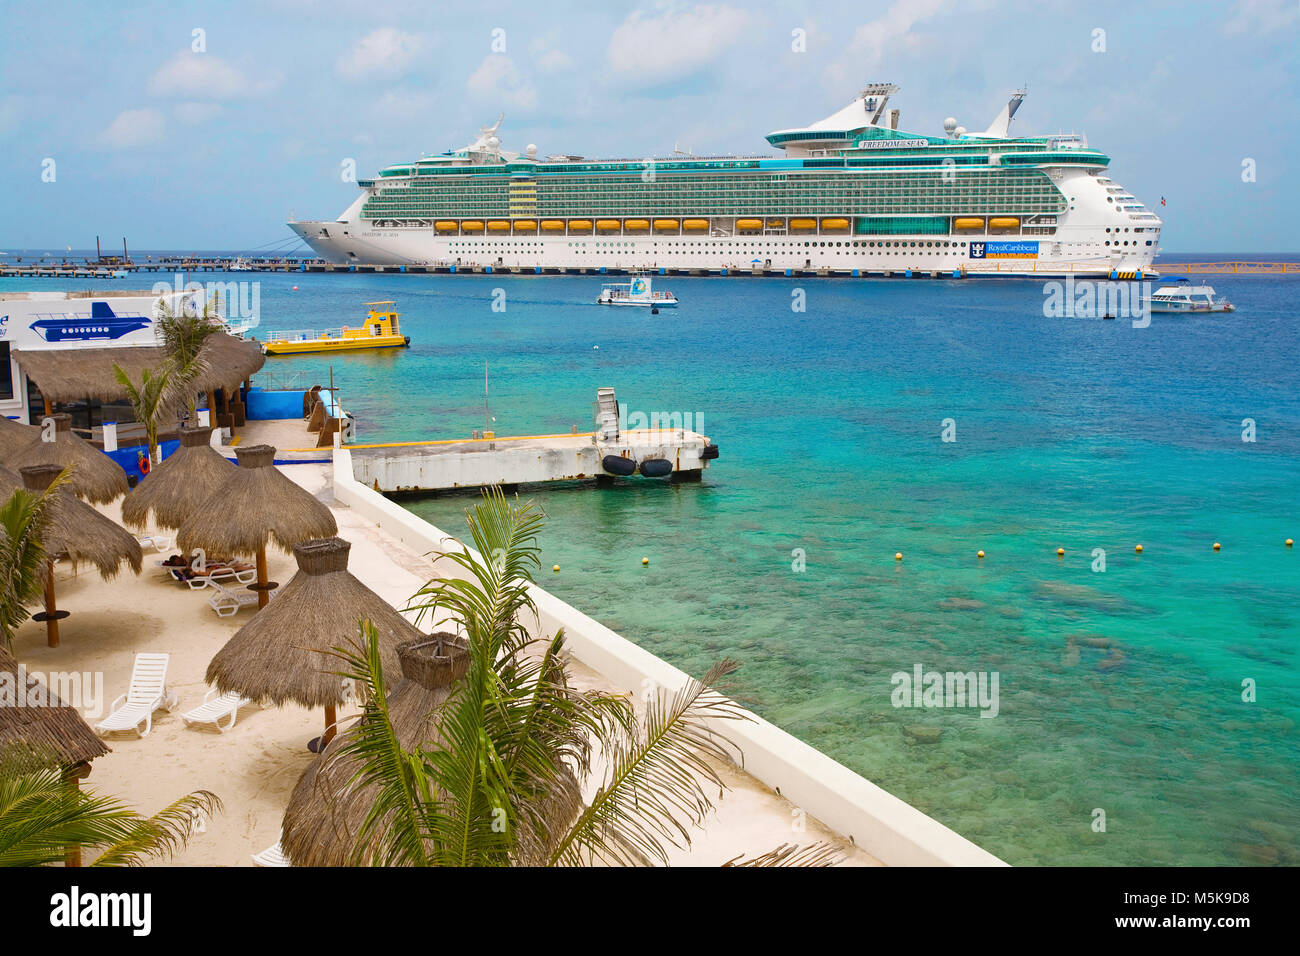 Cruise liner 'Freedom of the seas' at San Miguel, Cozumel, Mexico, Caribbean - Stock Image